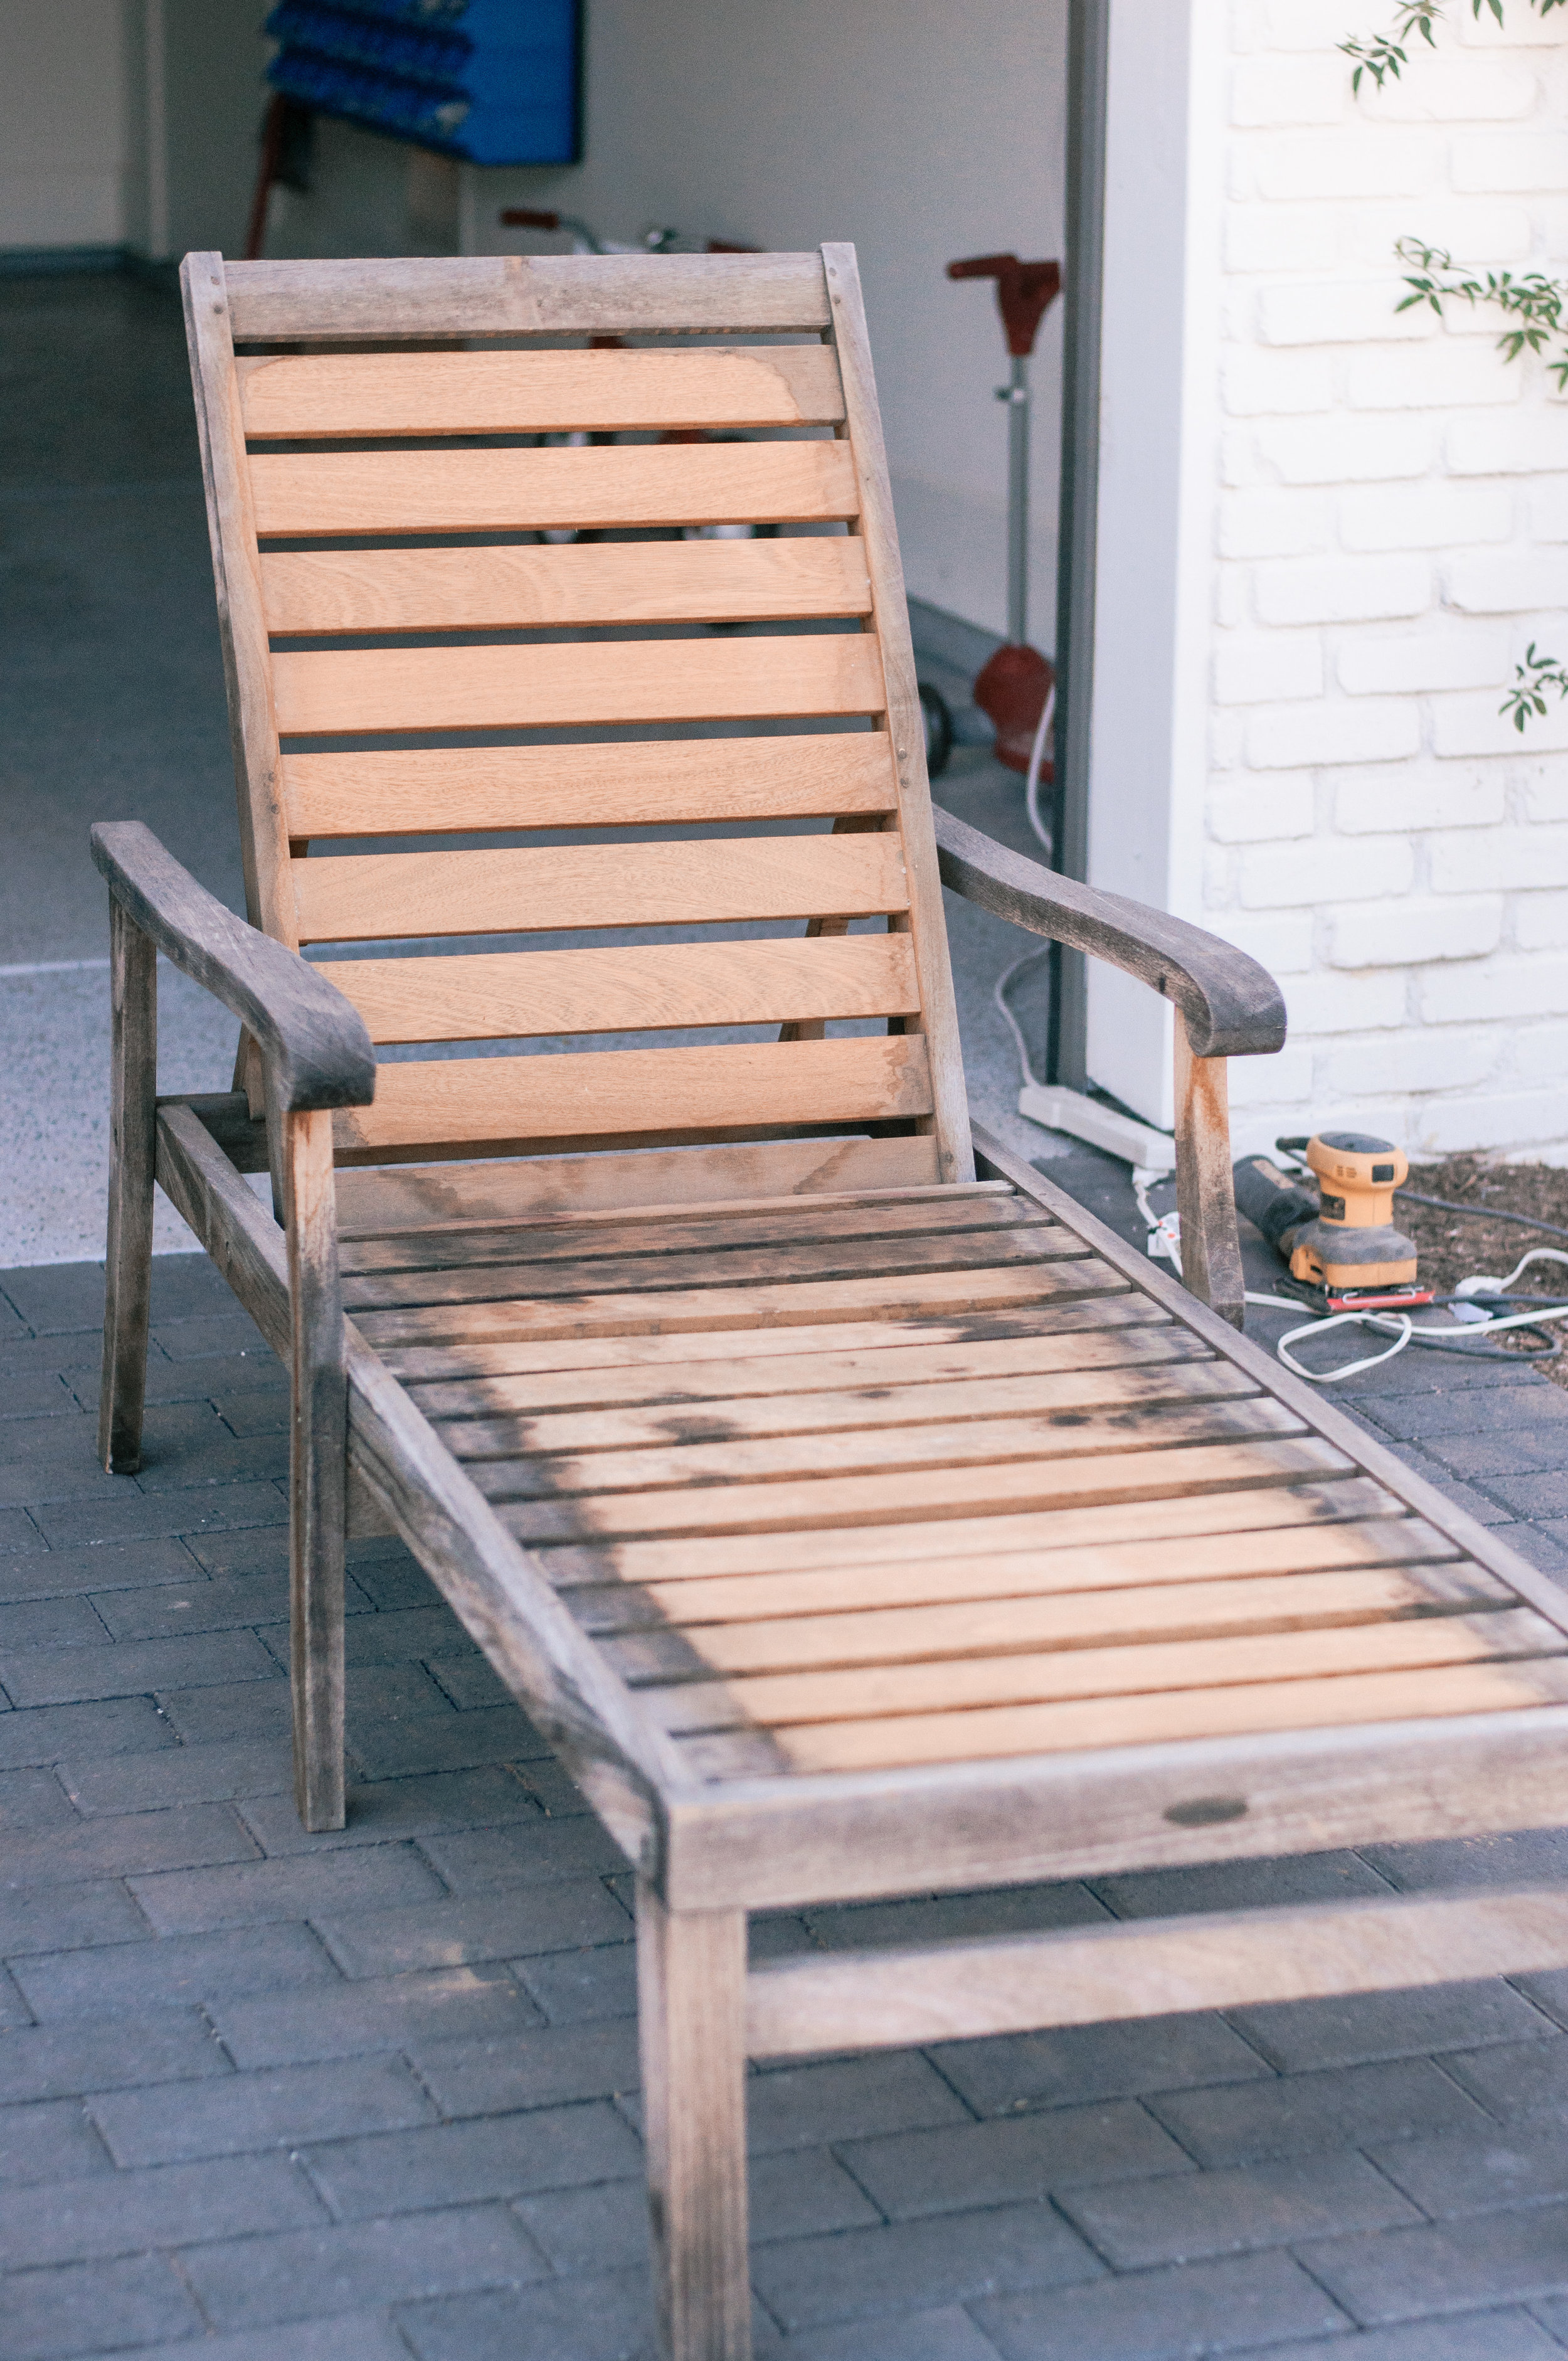 Outdoor Teak Furniture Restoration Tutorial, tips featured by top US home DIY blogger, Love and Specs